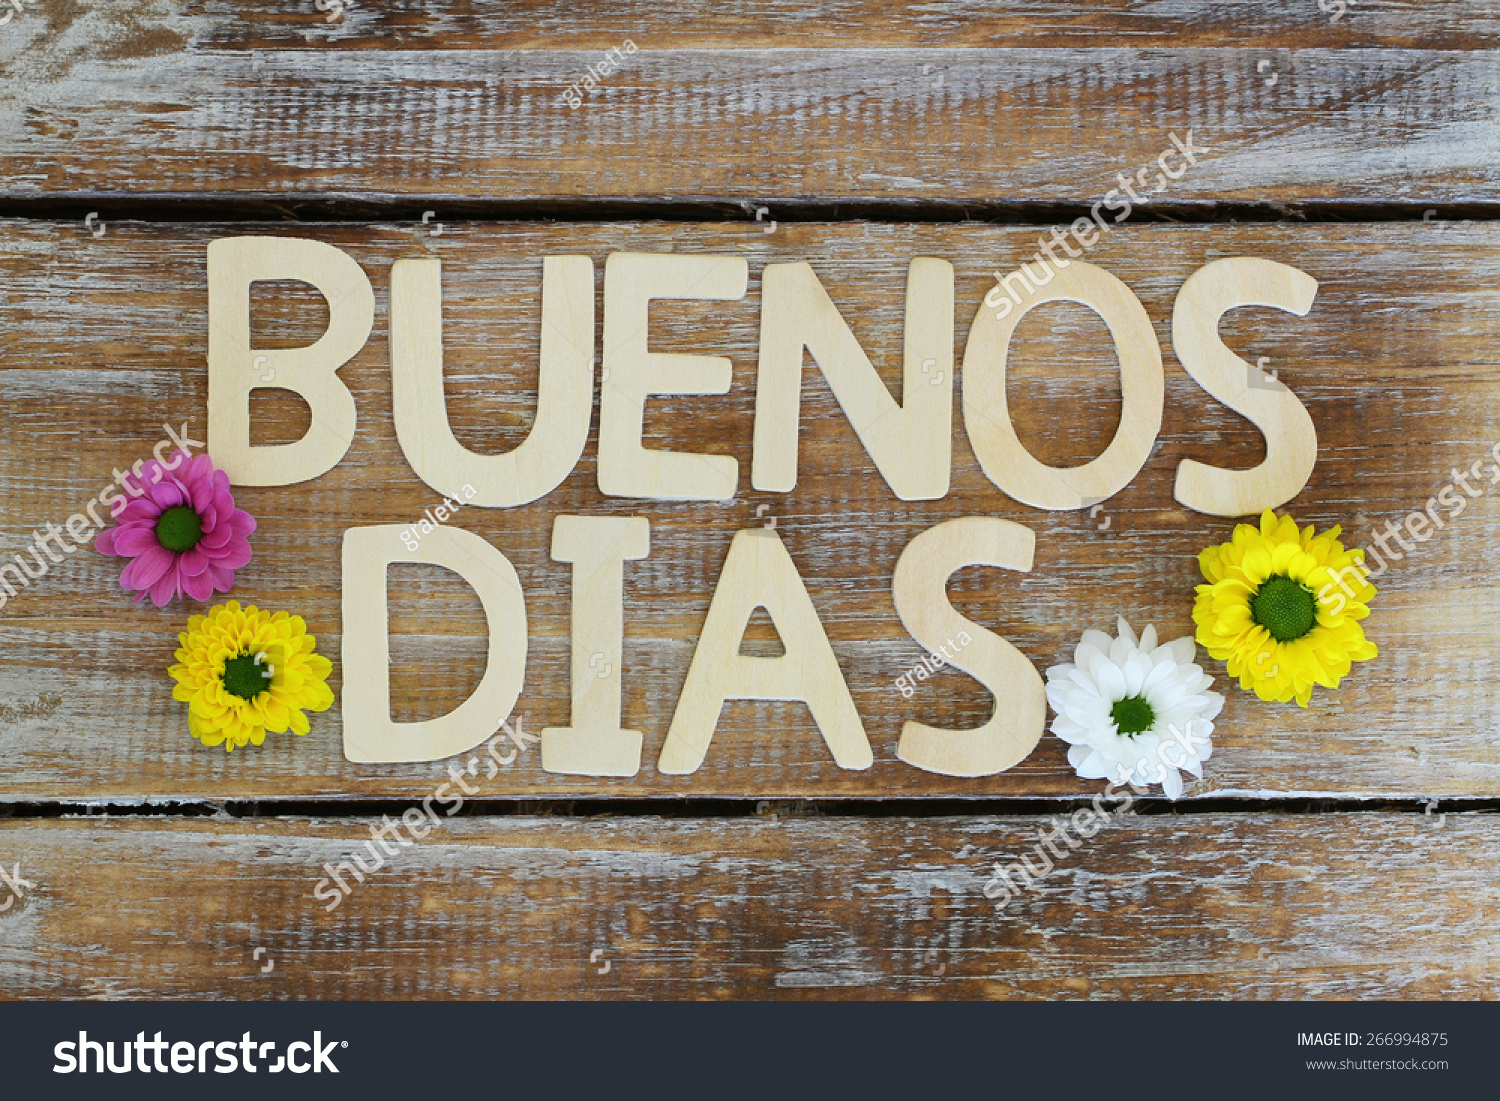 How U Say Good Morning In Spanish : Buenos dias good morning in spanish written with wooden